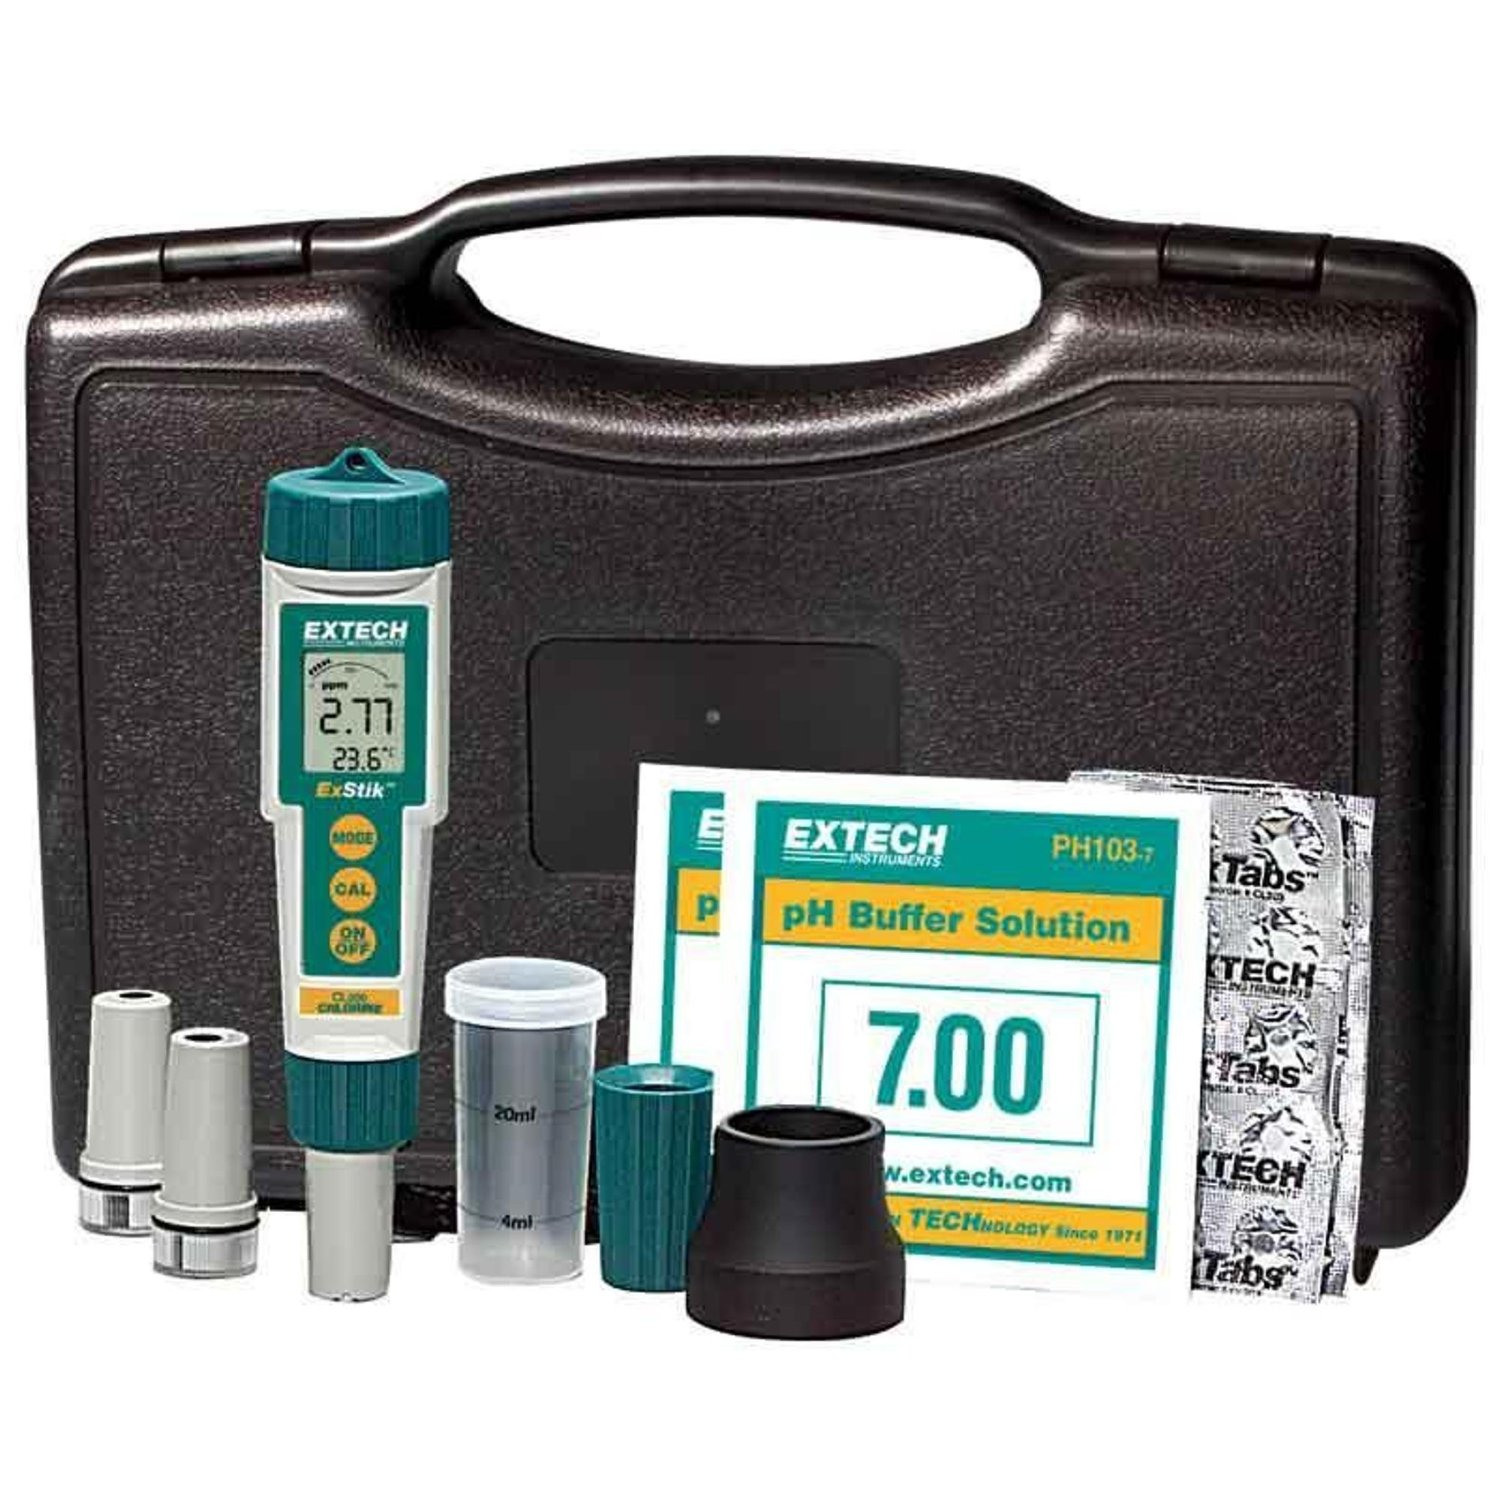 EXTECH EX900 - 4-in-1 Chlorine, pH, ORP and Temperature Kit